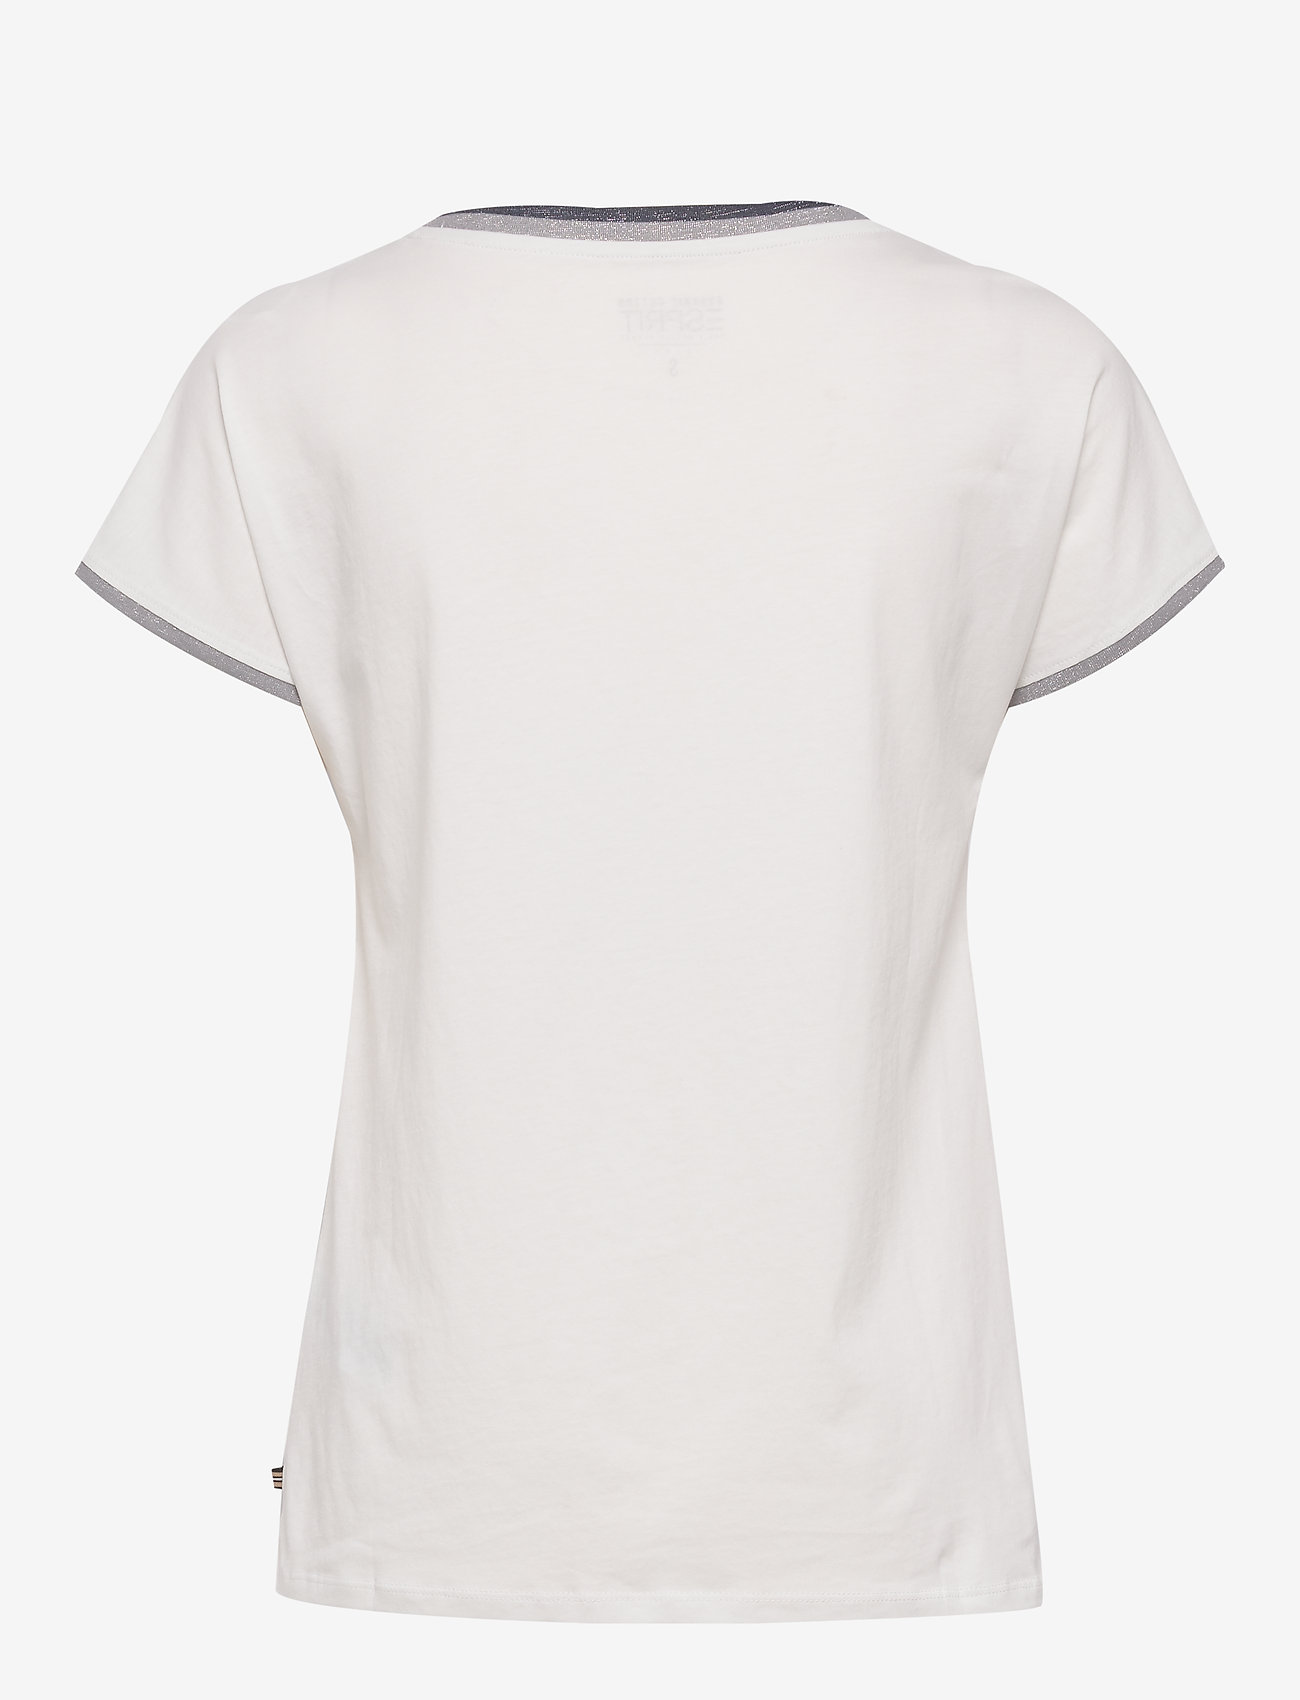 Esprit Casual - T-Shirts - t-shirts - off white - 1